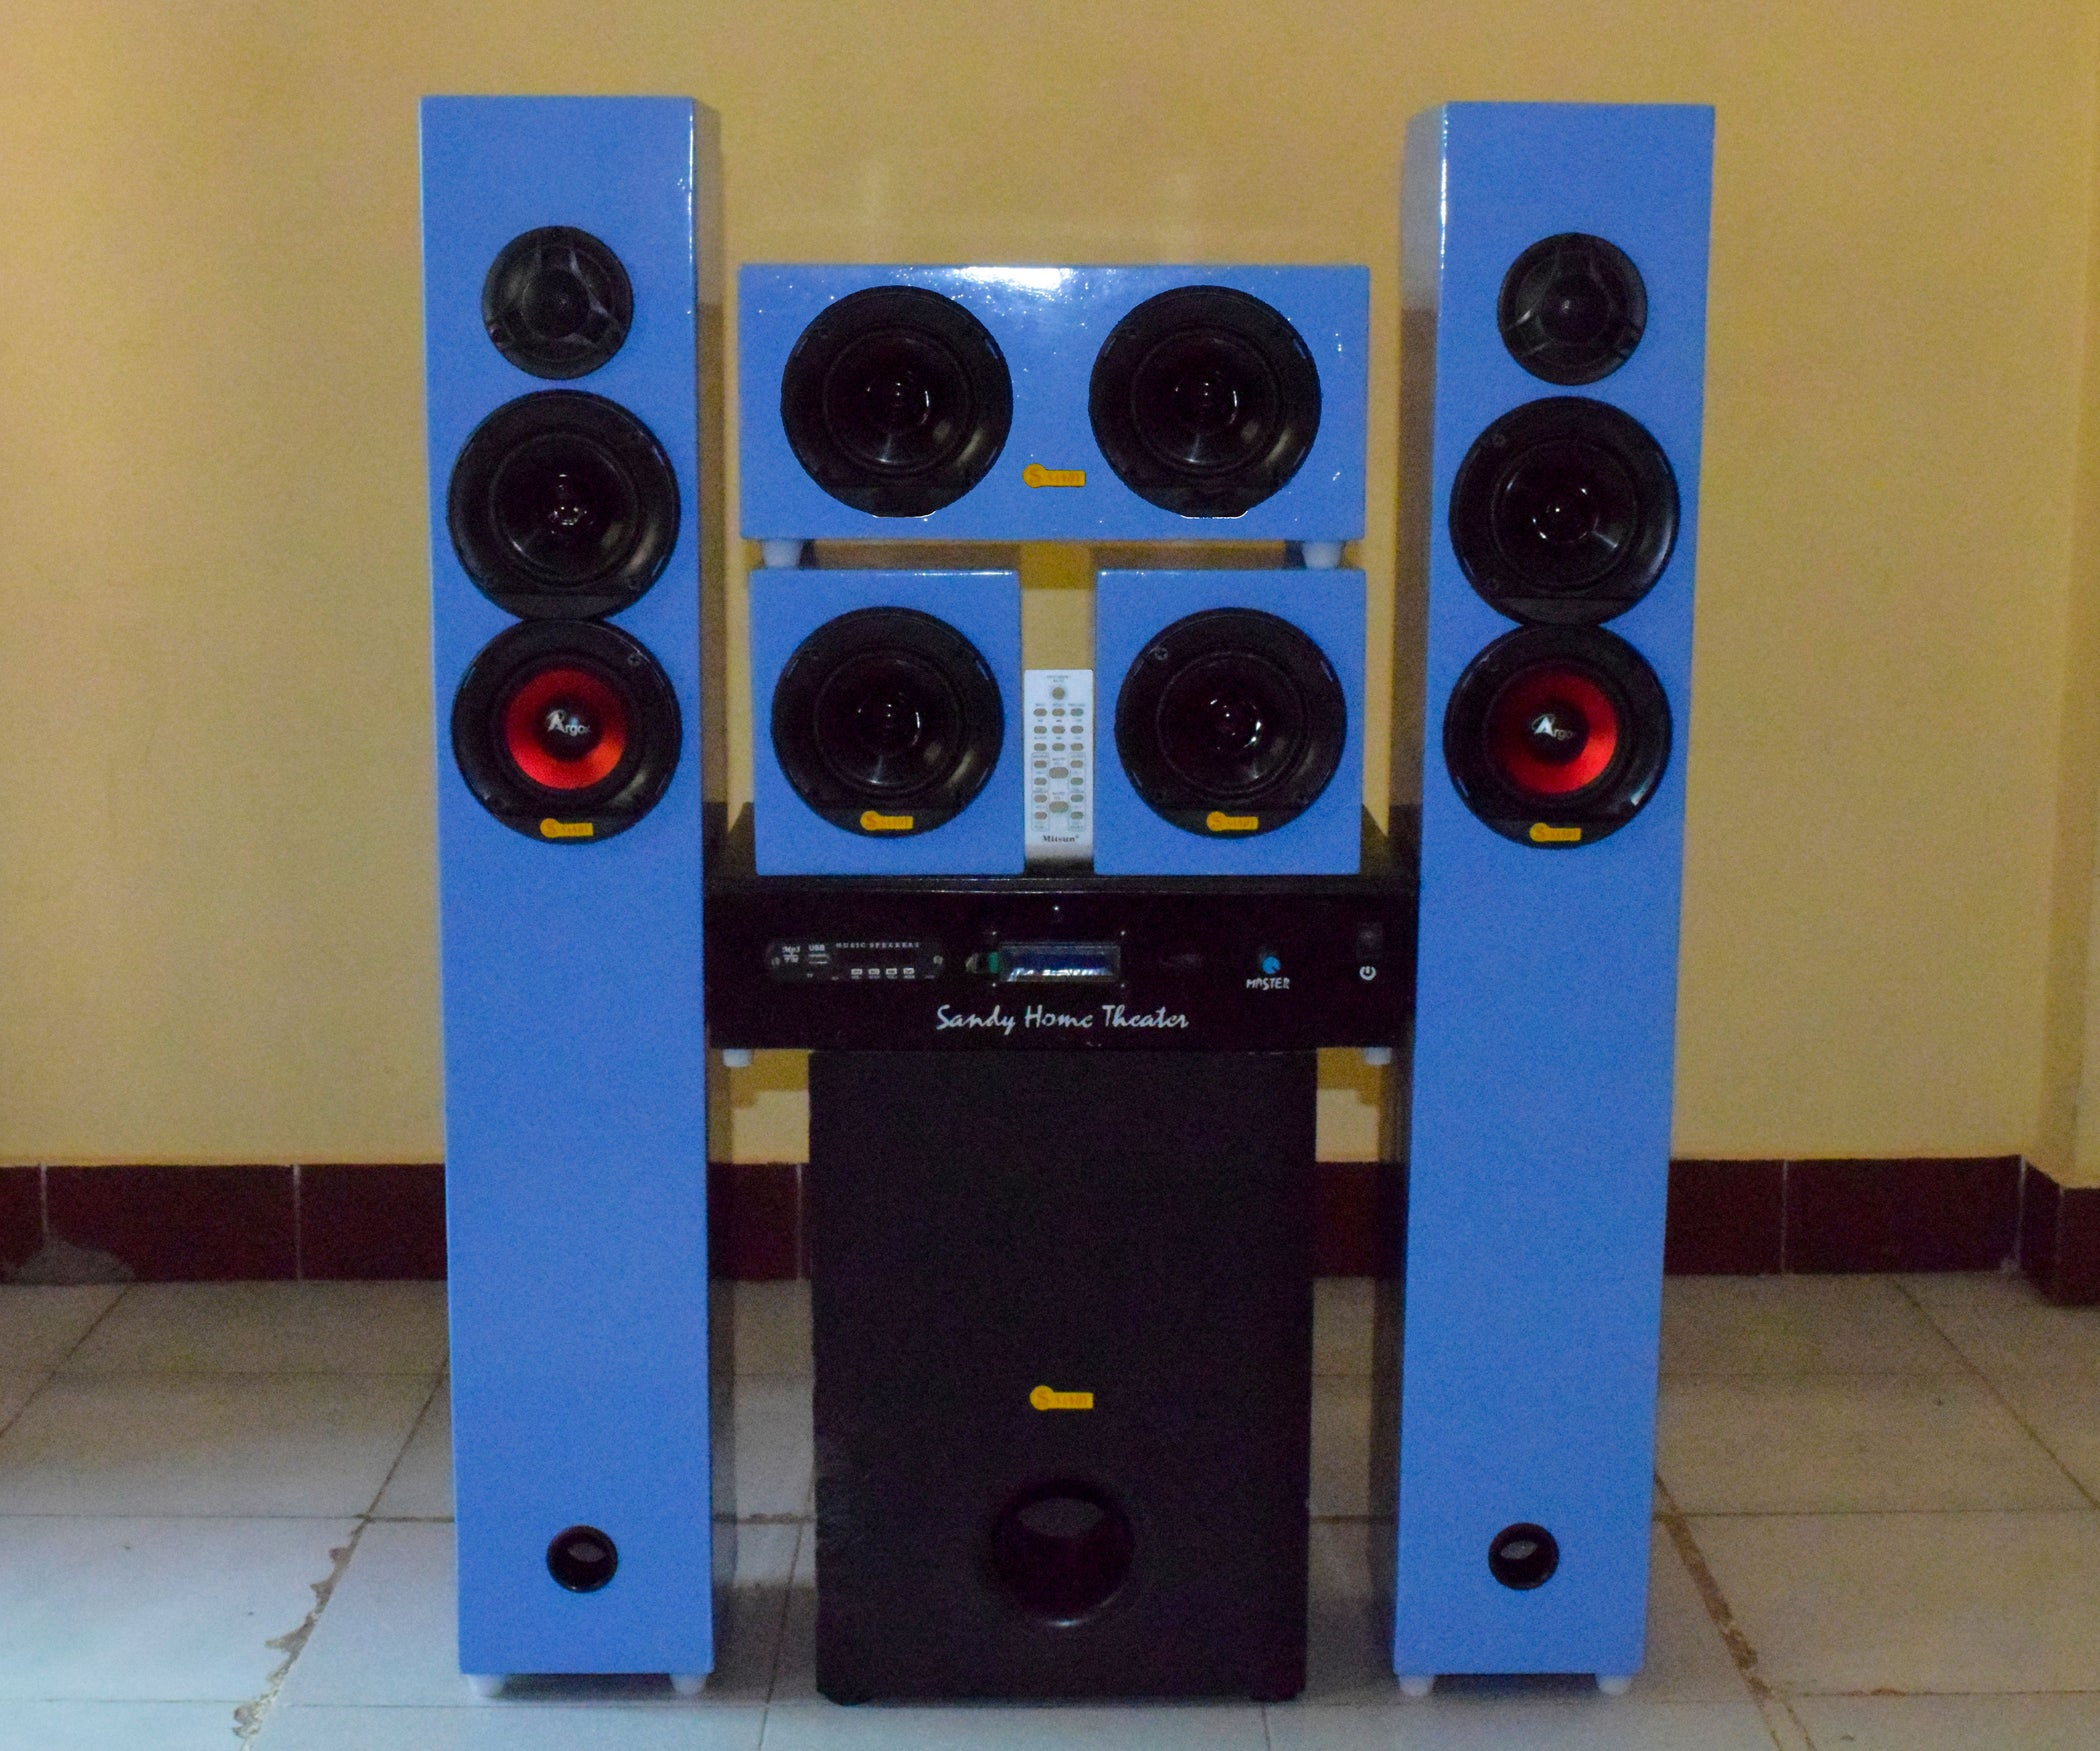 Diy 51 Home Theater System 700watt Rms 12 Steps With Pictures 300 Watt Subwoofer Power Amplifier